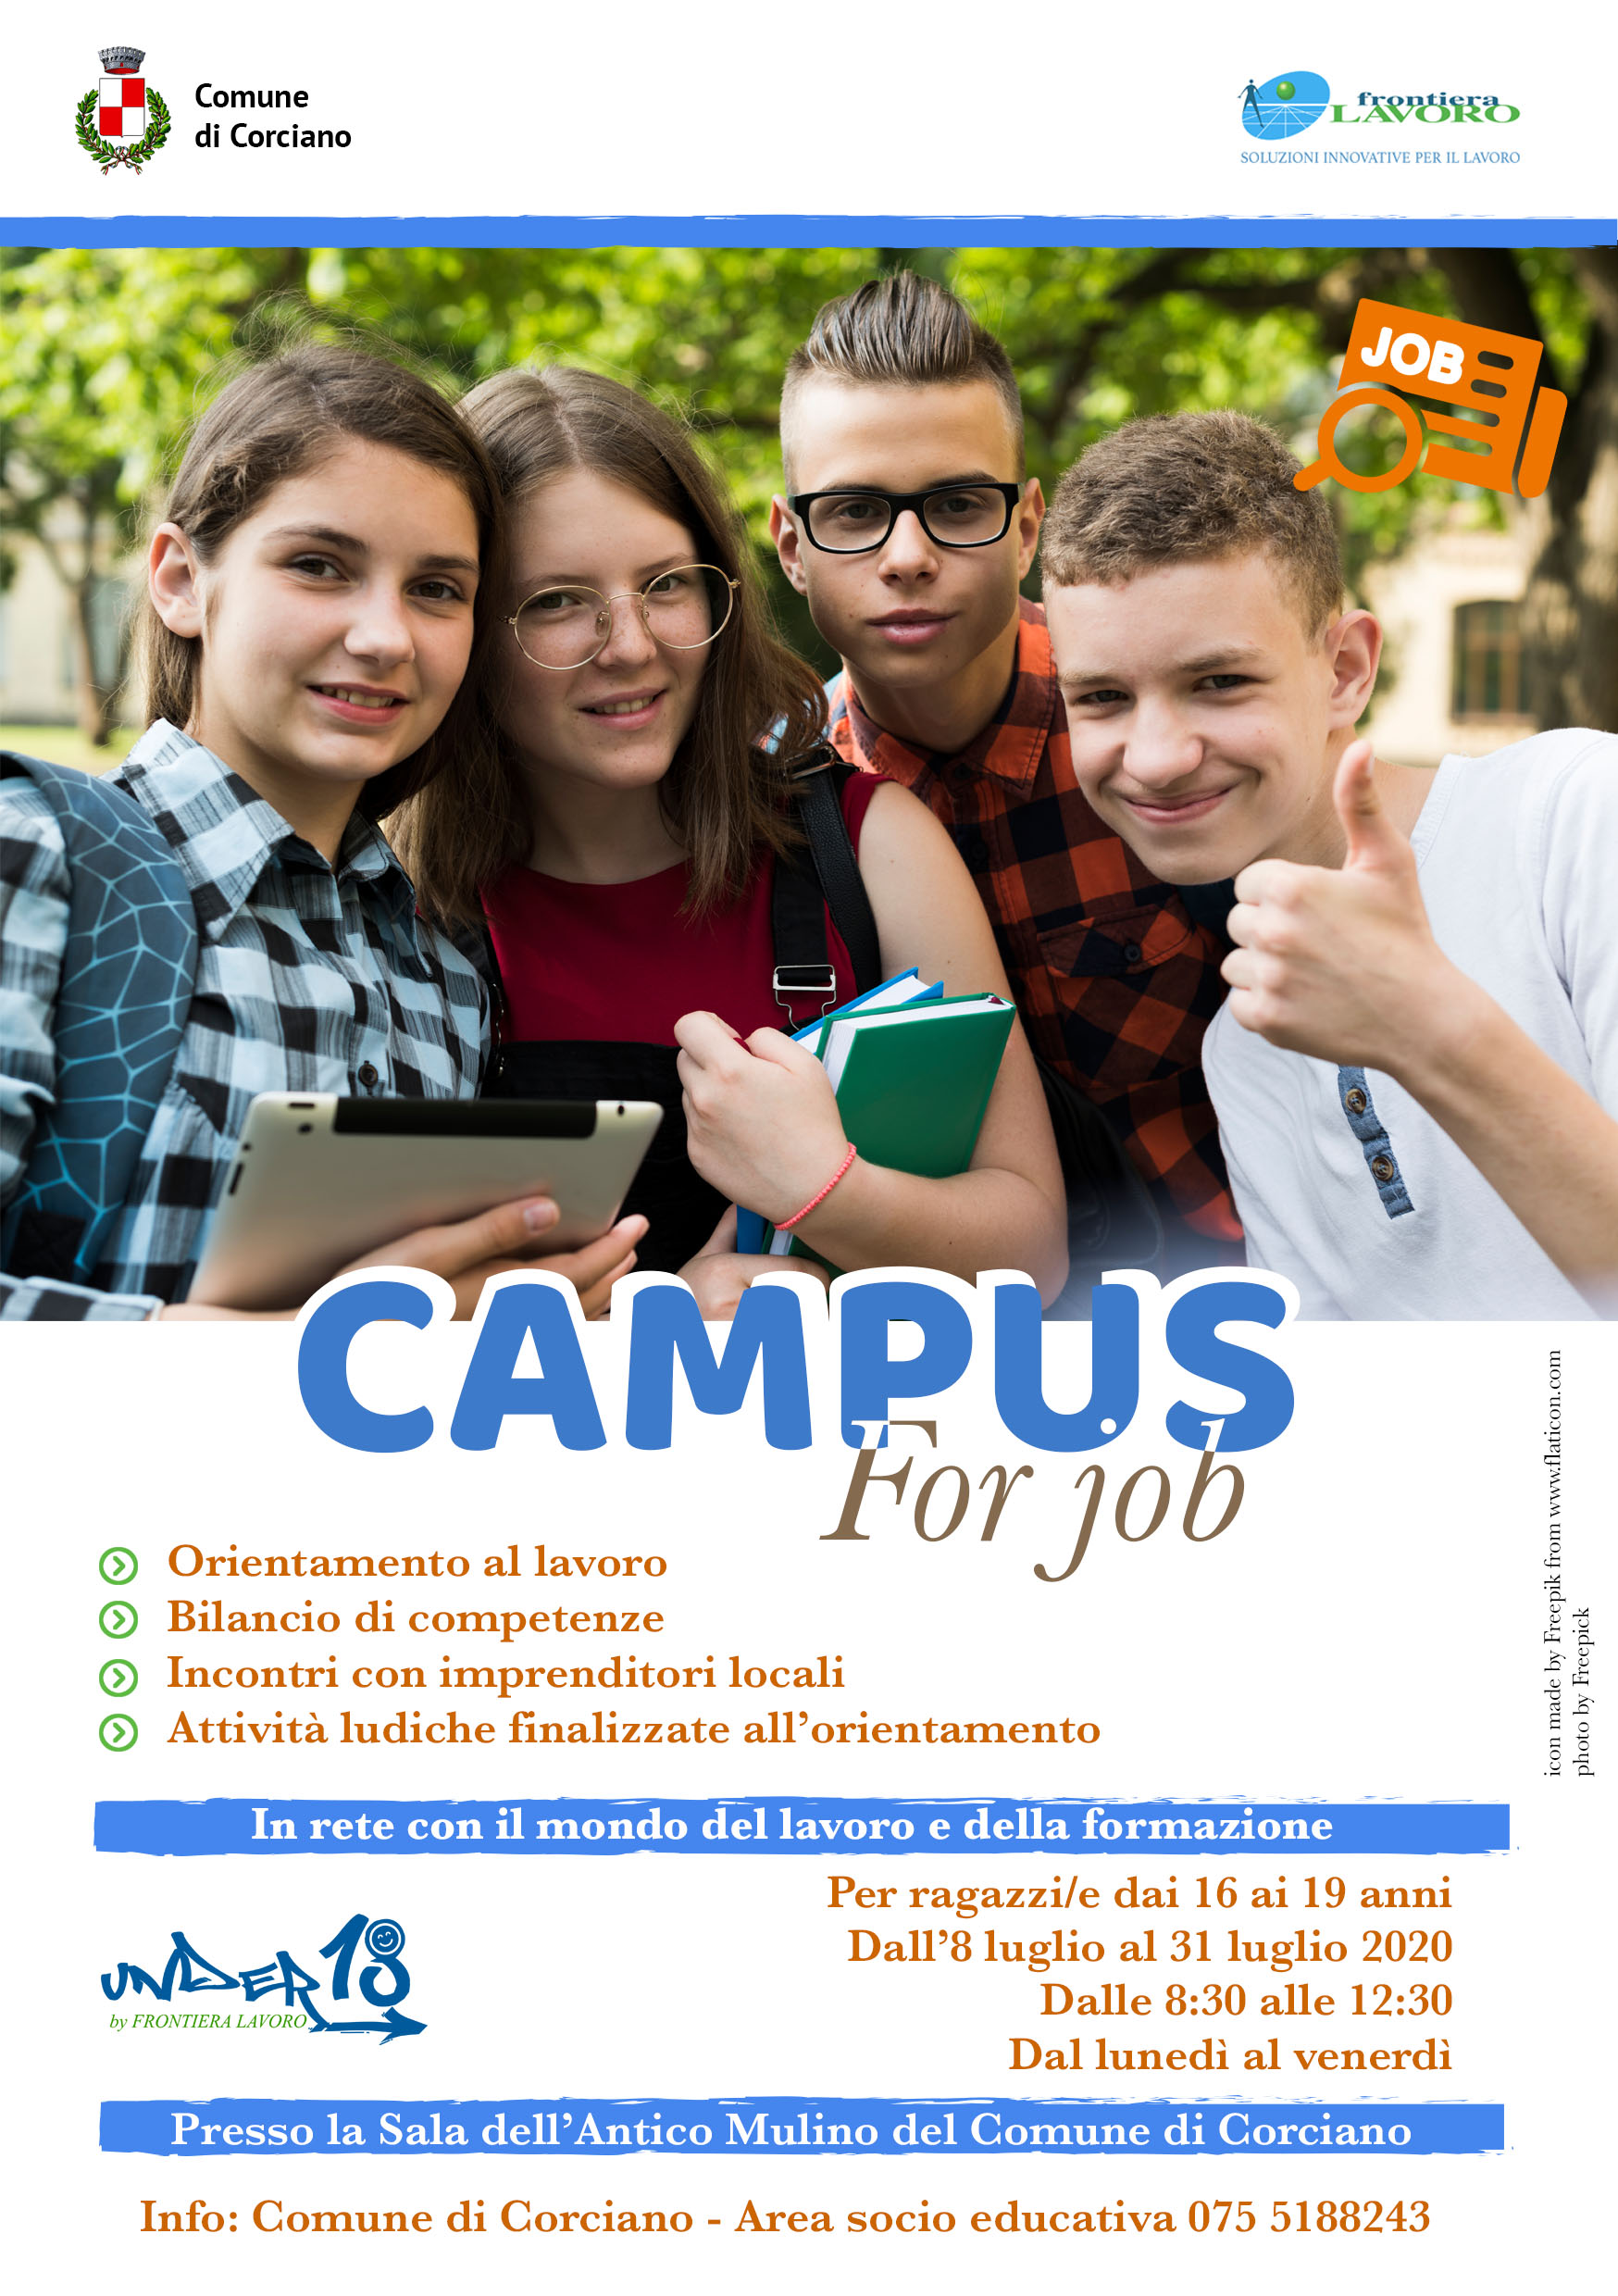 VOLANTINO_CAMPUS_FOR_JOB_CORCIANO_2020.jpg